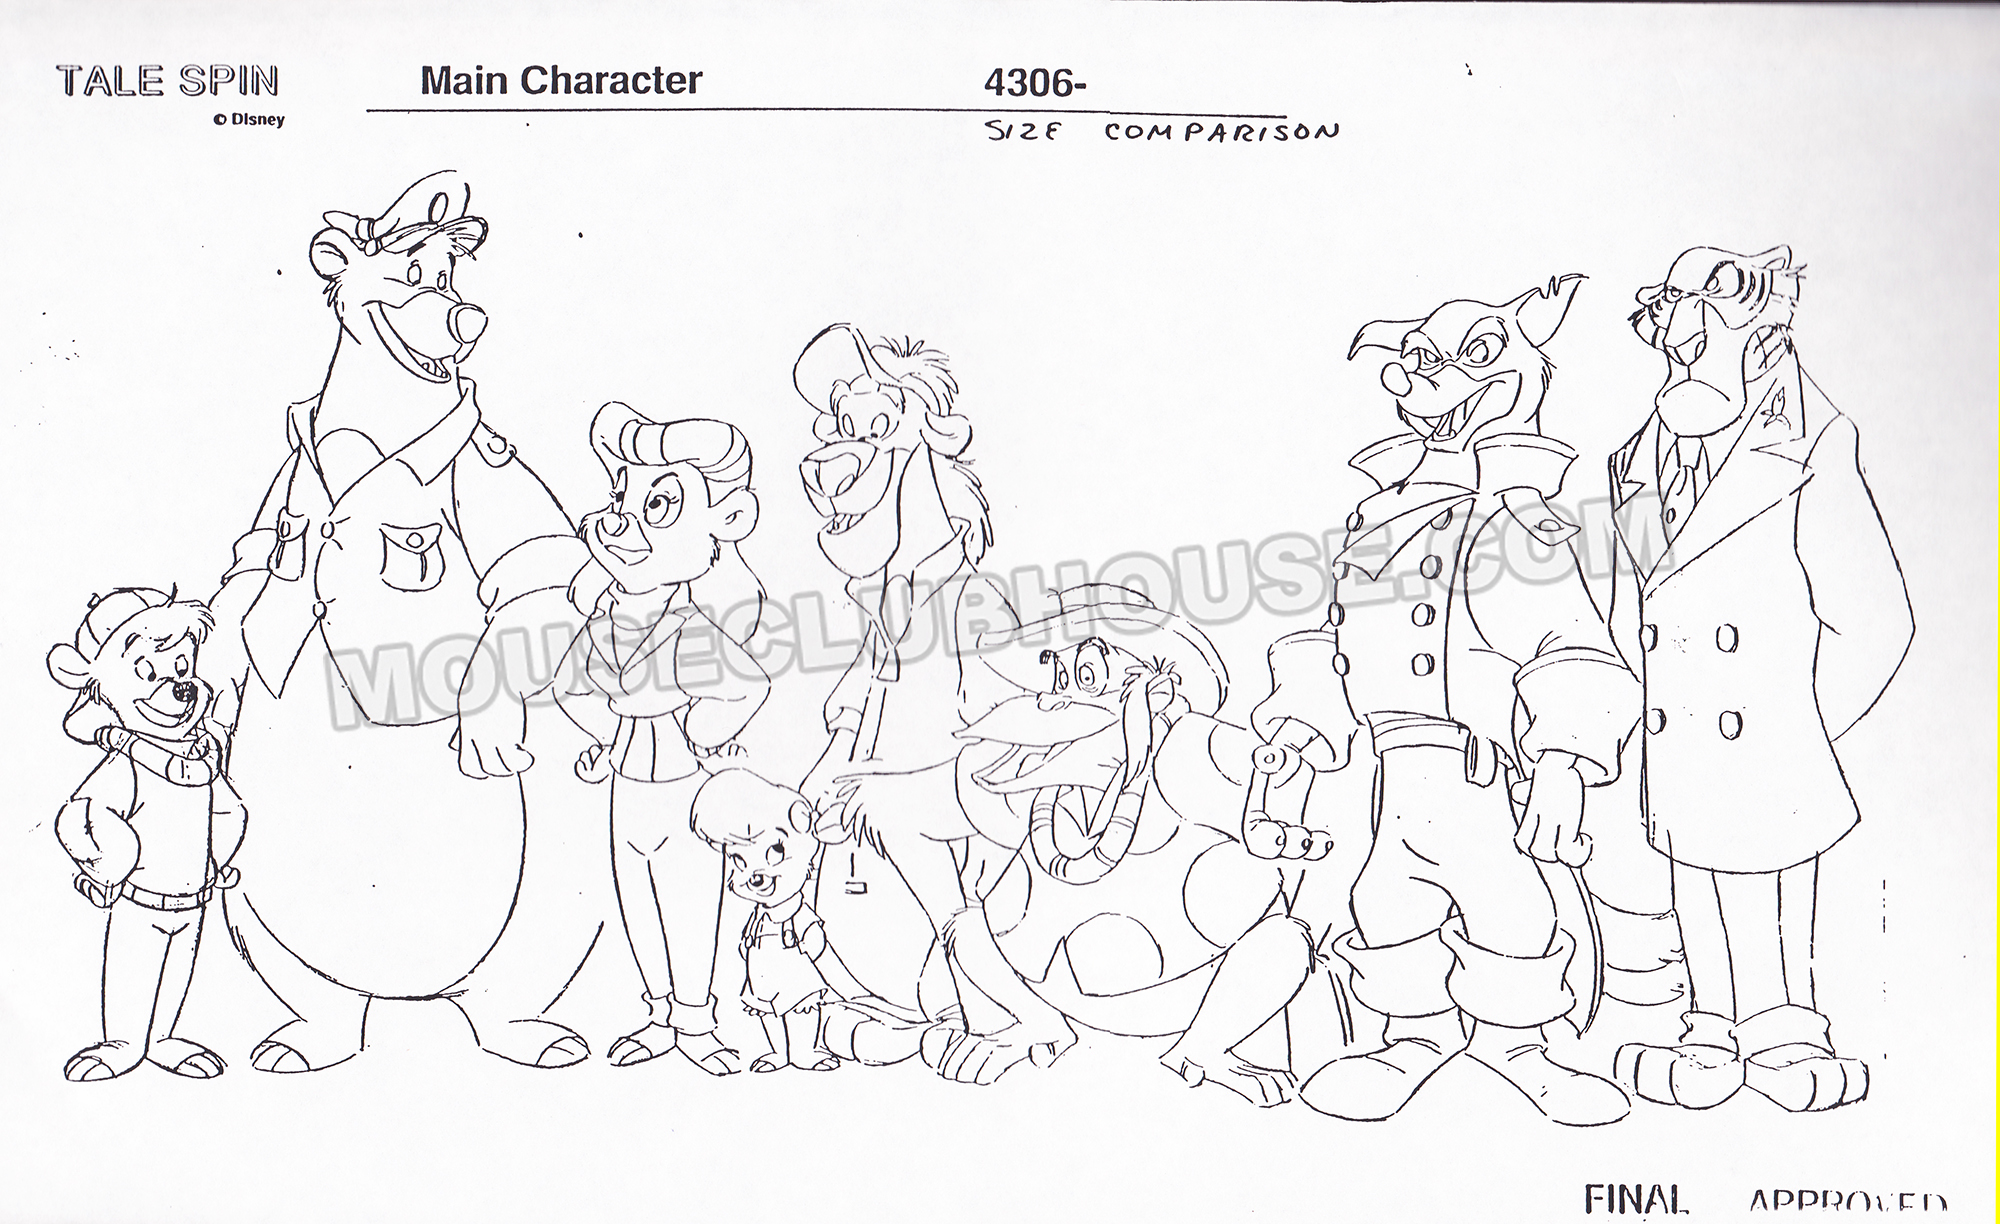 TaleSpin size comparison